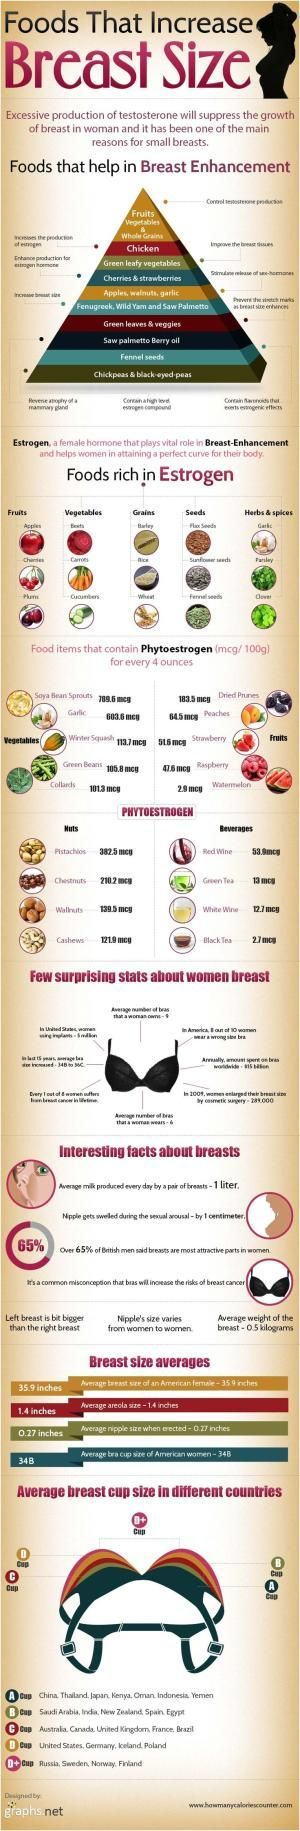 [Up-A-Cup - Natural Breast Enhancement] - http://www.usatimeoffer.com/UPaCupNaturalBreastEnhancement/women-who-are-wishing-for-a-more-curvy-body-shape-with-enhanced-bust-could-try-t/ -  -  The natural and effective surgery alternative to fuller breasts is Up-A-Cup! When applied over the course of several weeks, the product helps to increase the size of the breasts by stimulating new cell growth in the mammary glands (breast tissue). The cream essentially mimics the body's nor